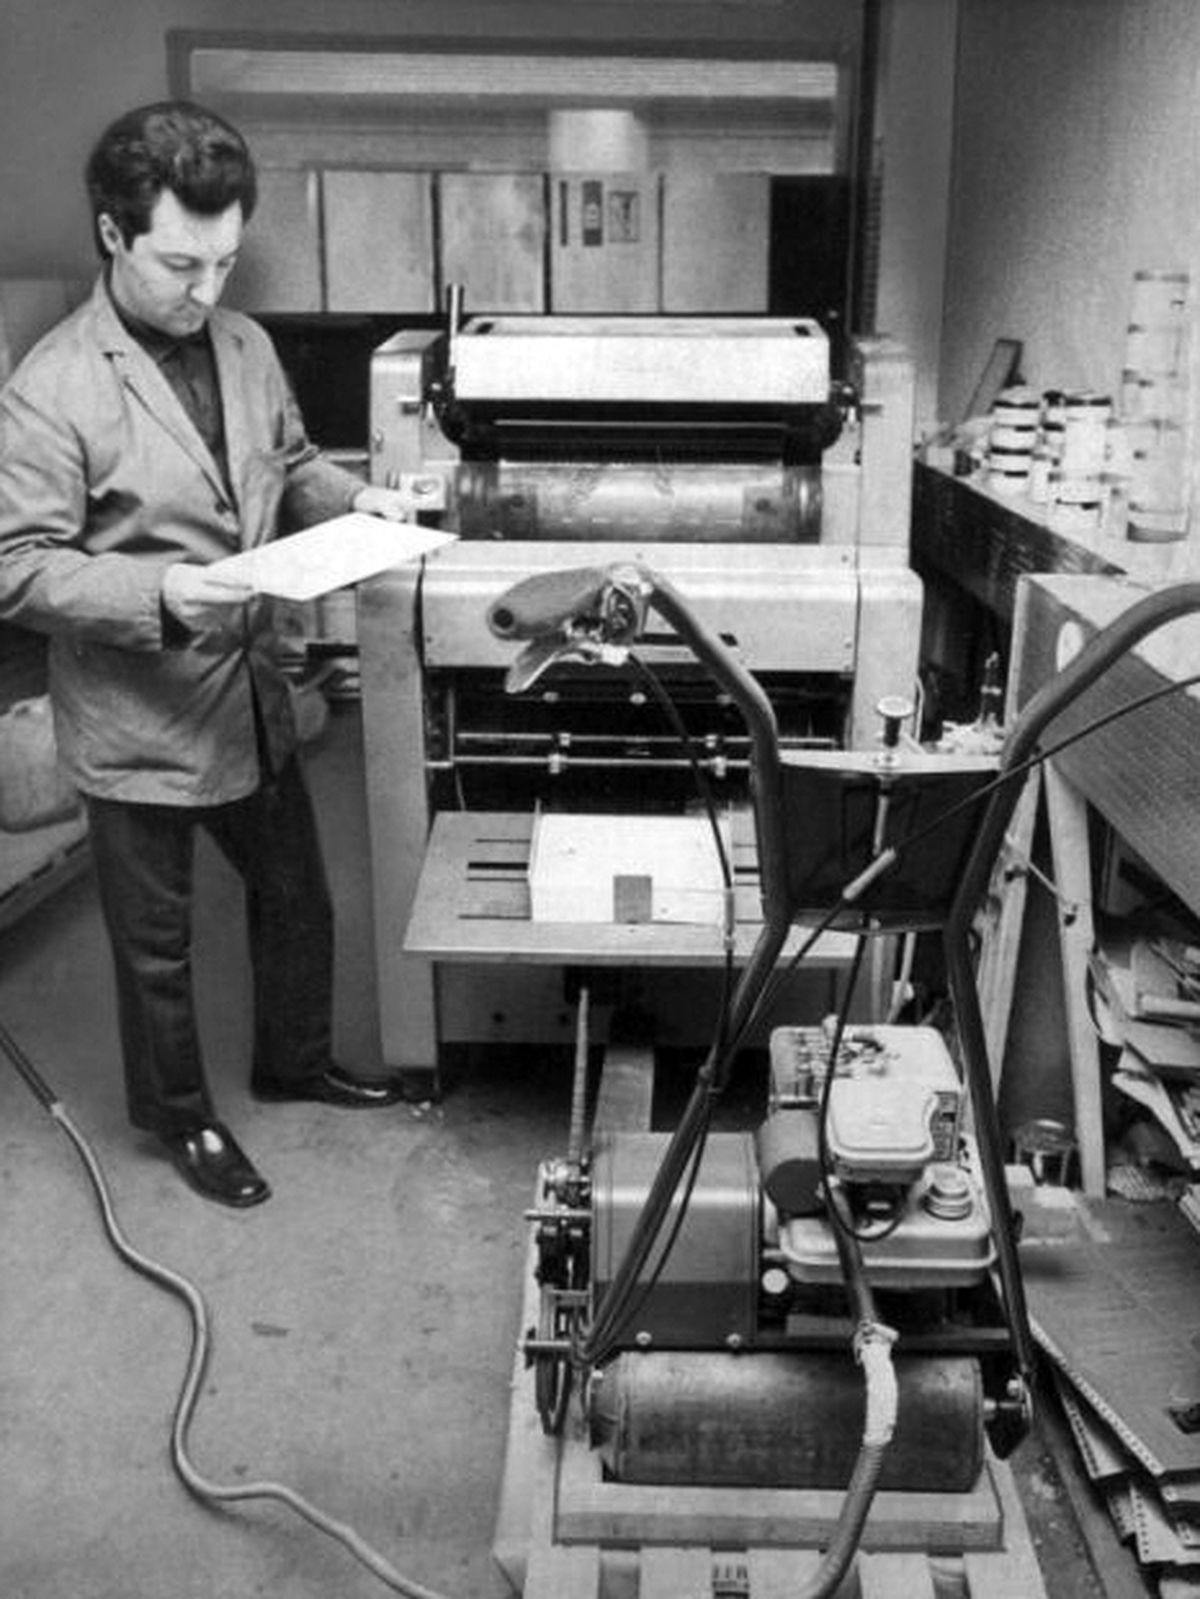 John Fisher of Stafford Reprographics used power from his petrol lawnmower to drive his printing press in February 1974.